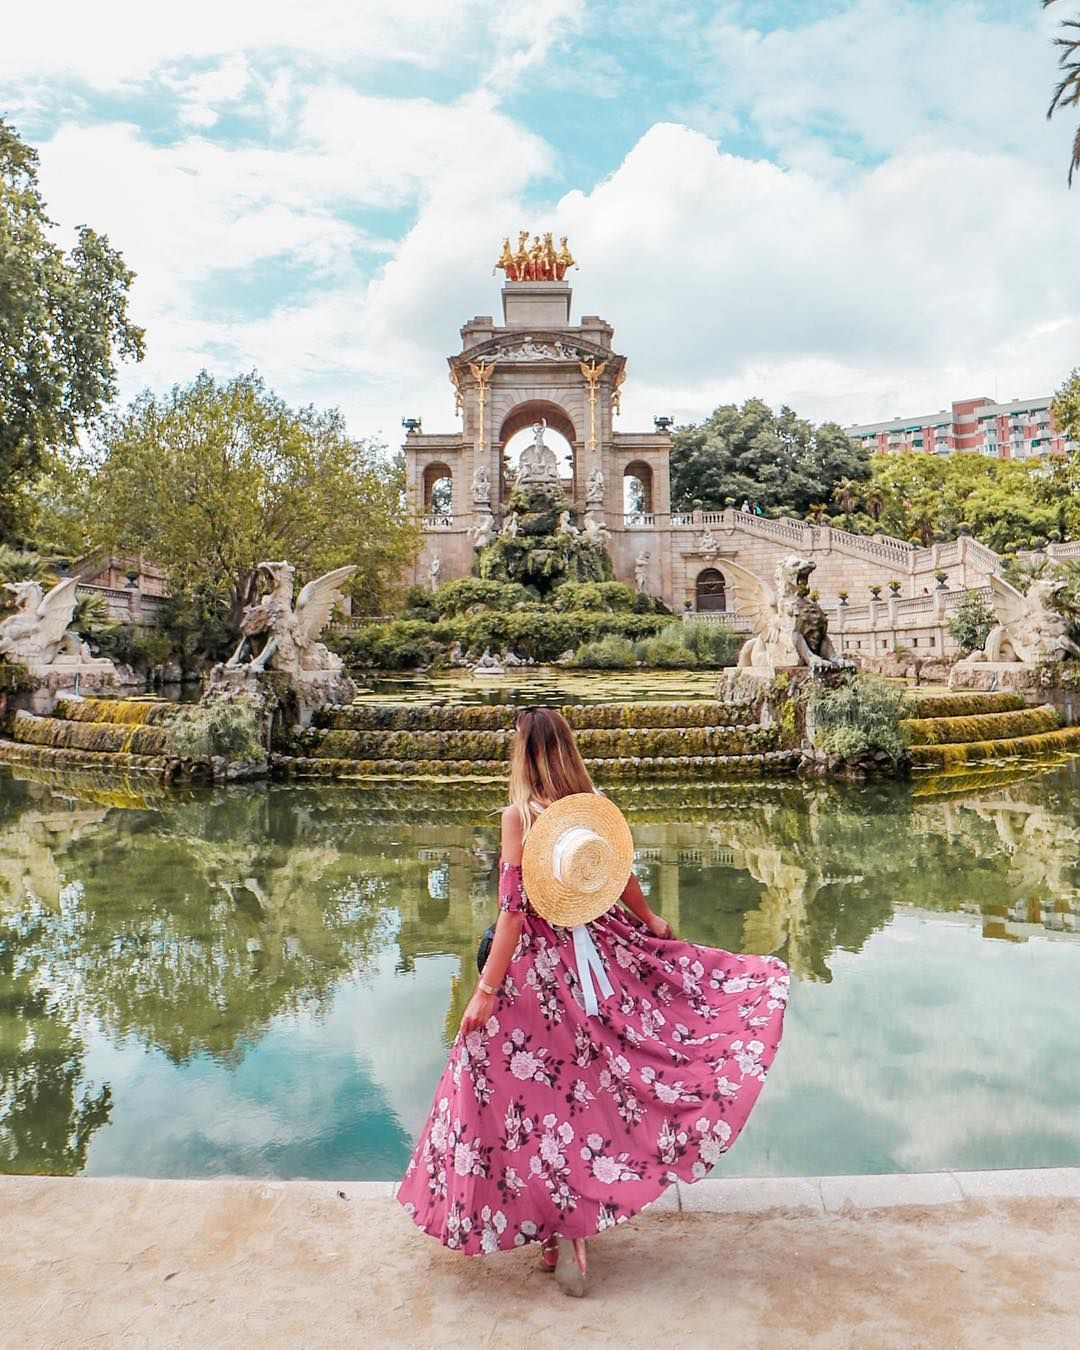 The 25 Most Instagrammable Spots In Barcelona With Addresses